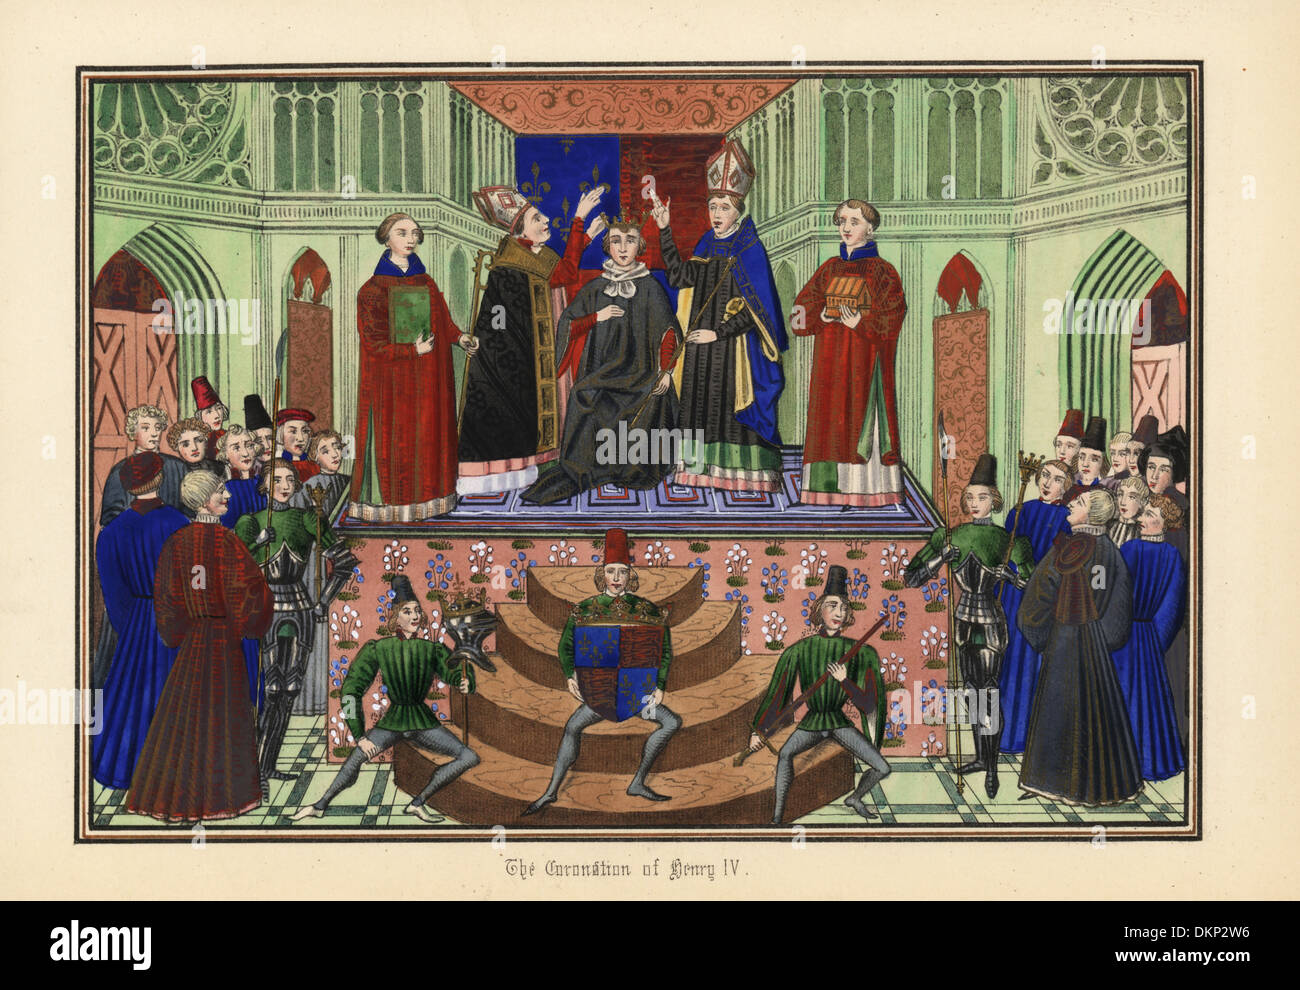 The coronation of King Henry IV of England, 1399. - Stock Image